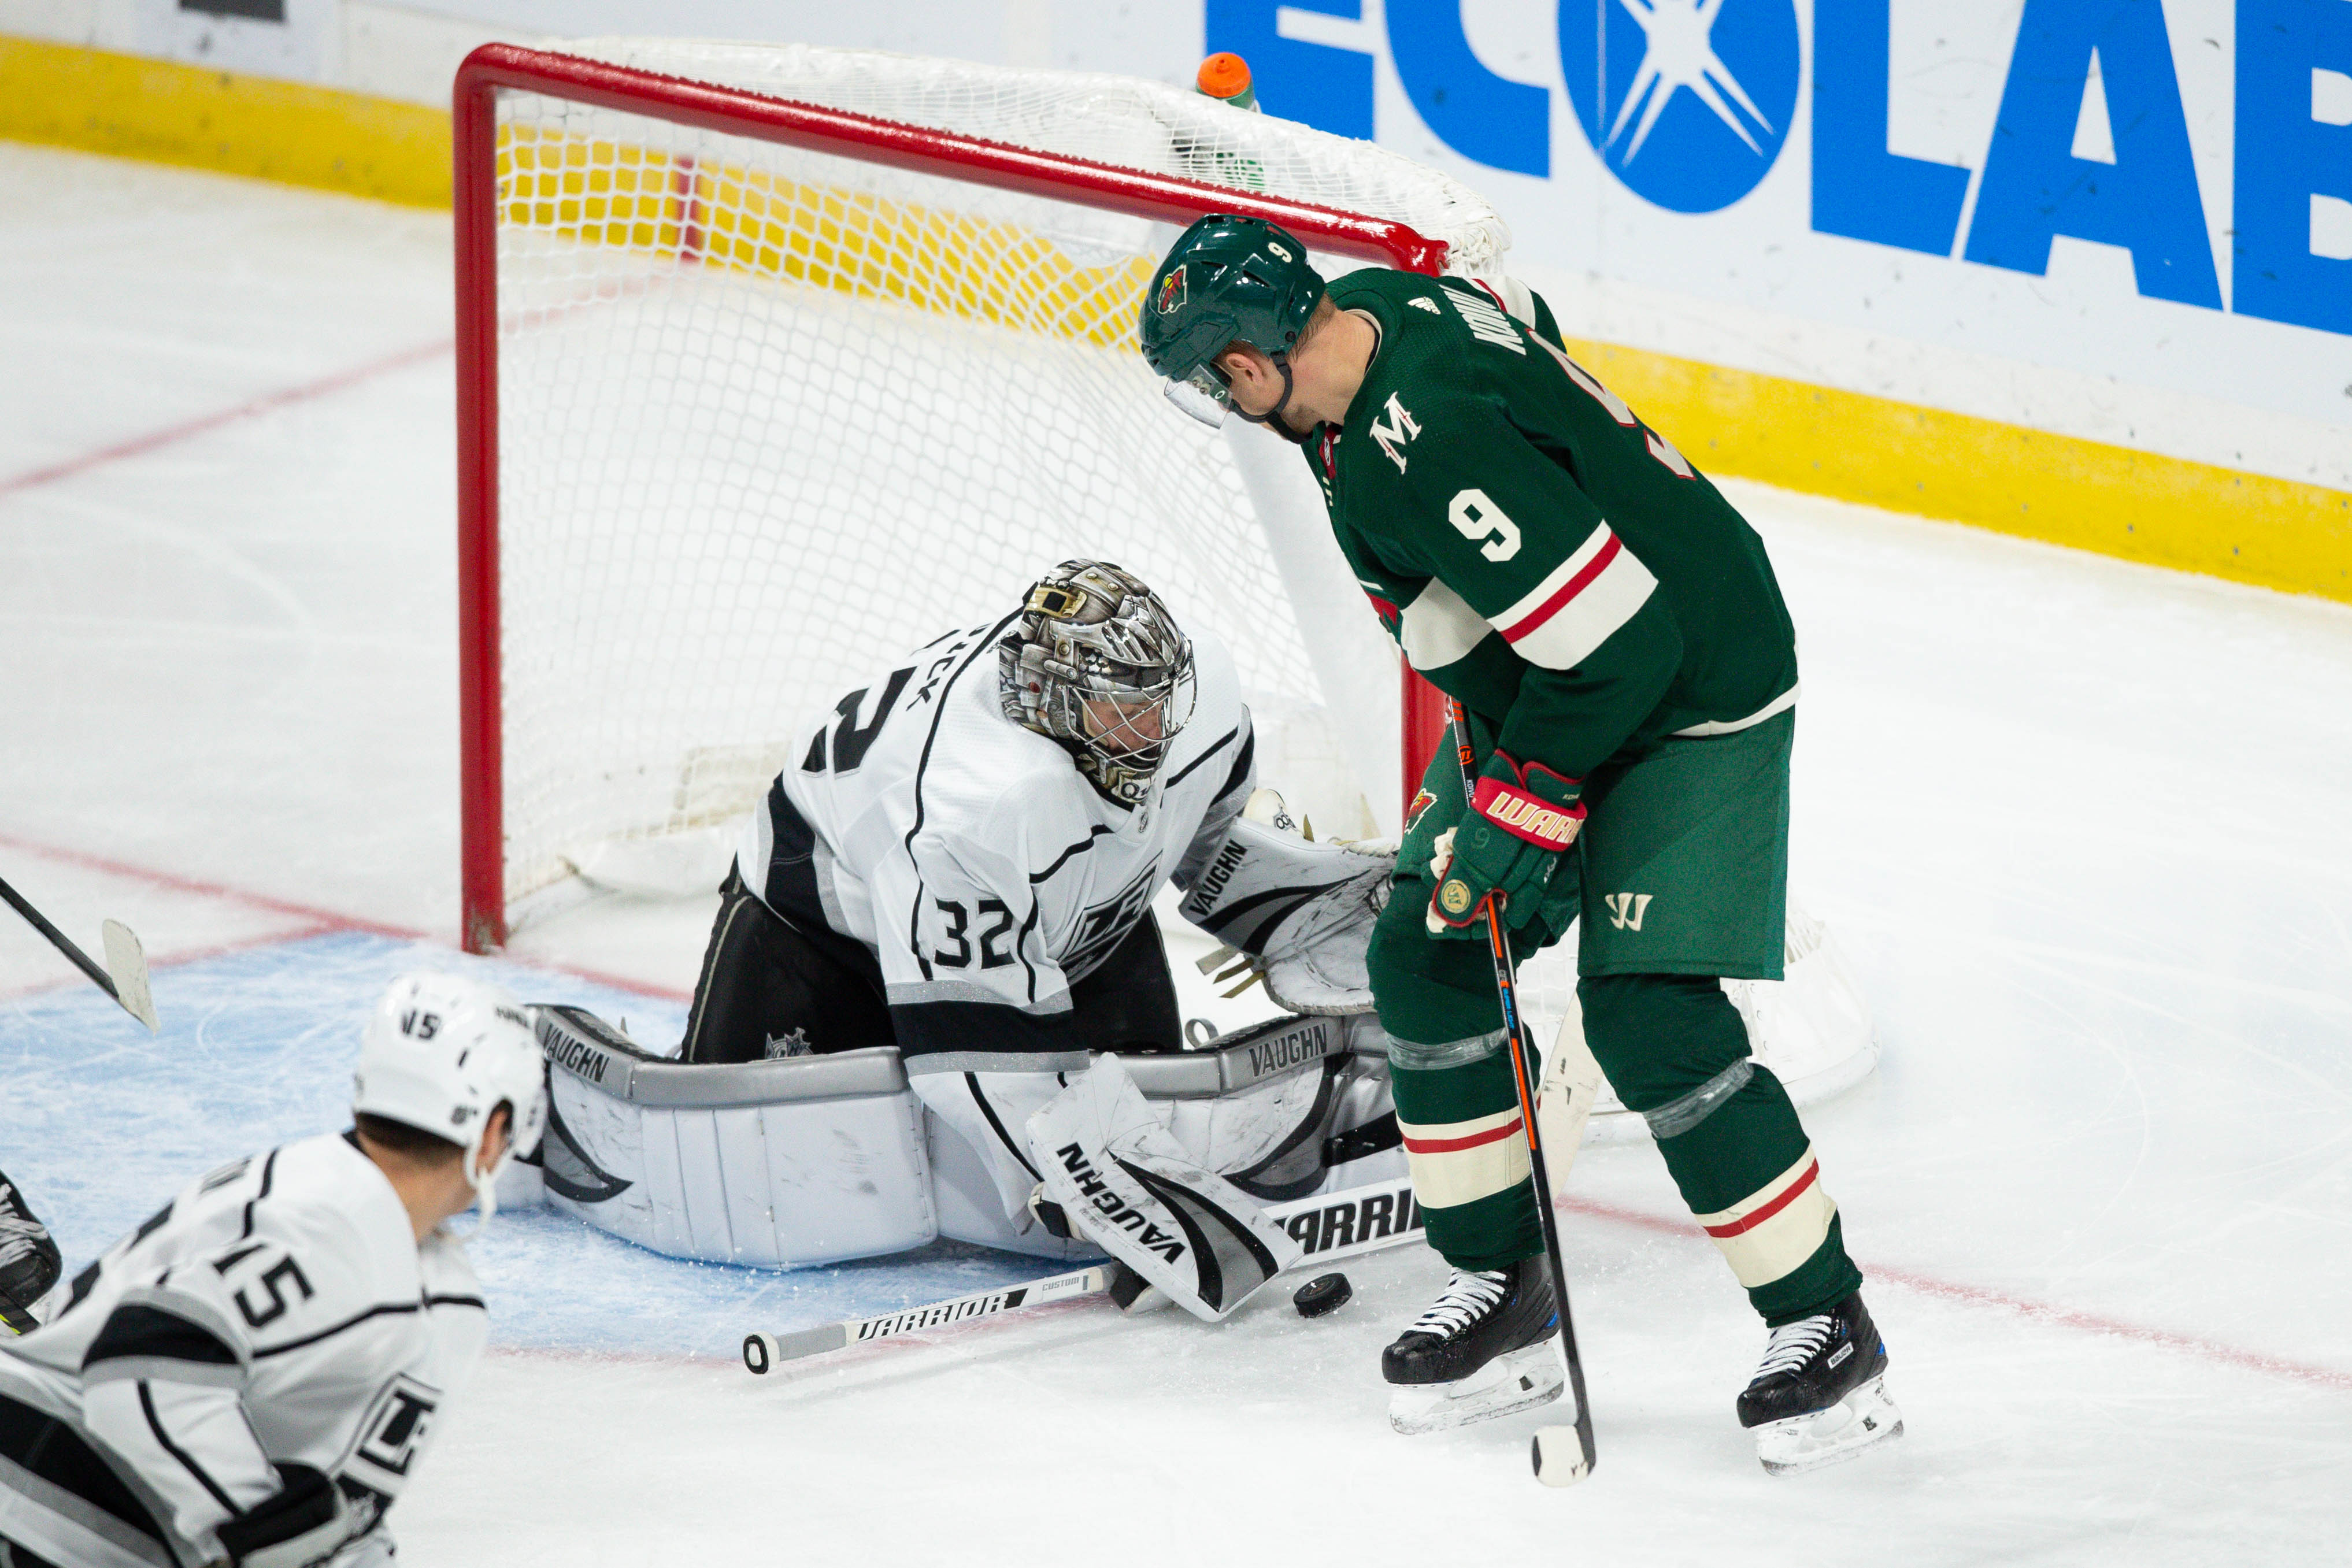 Game Preview: Minnesota Wild vs. Los Angeles Kings 11/12/19 @ 9:30PM CST at Staples Center